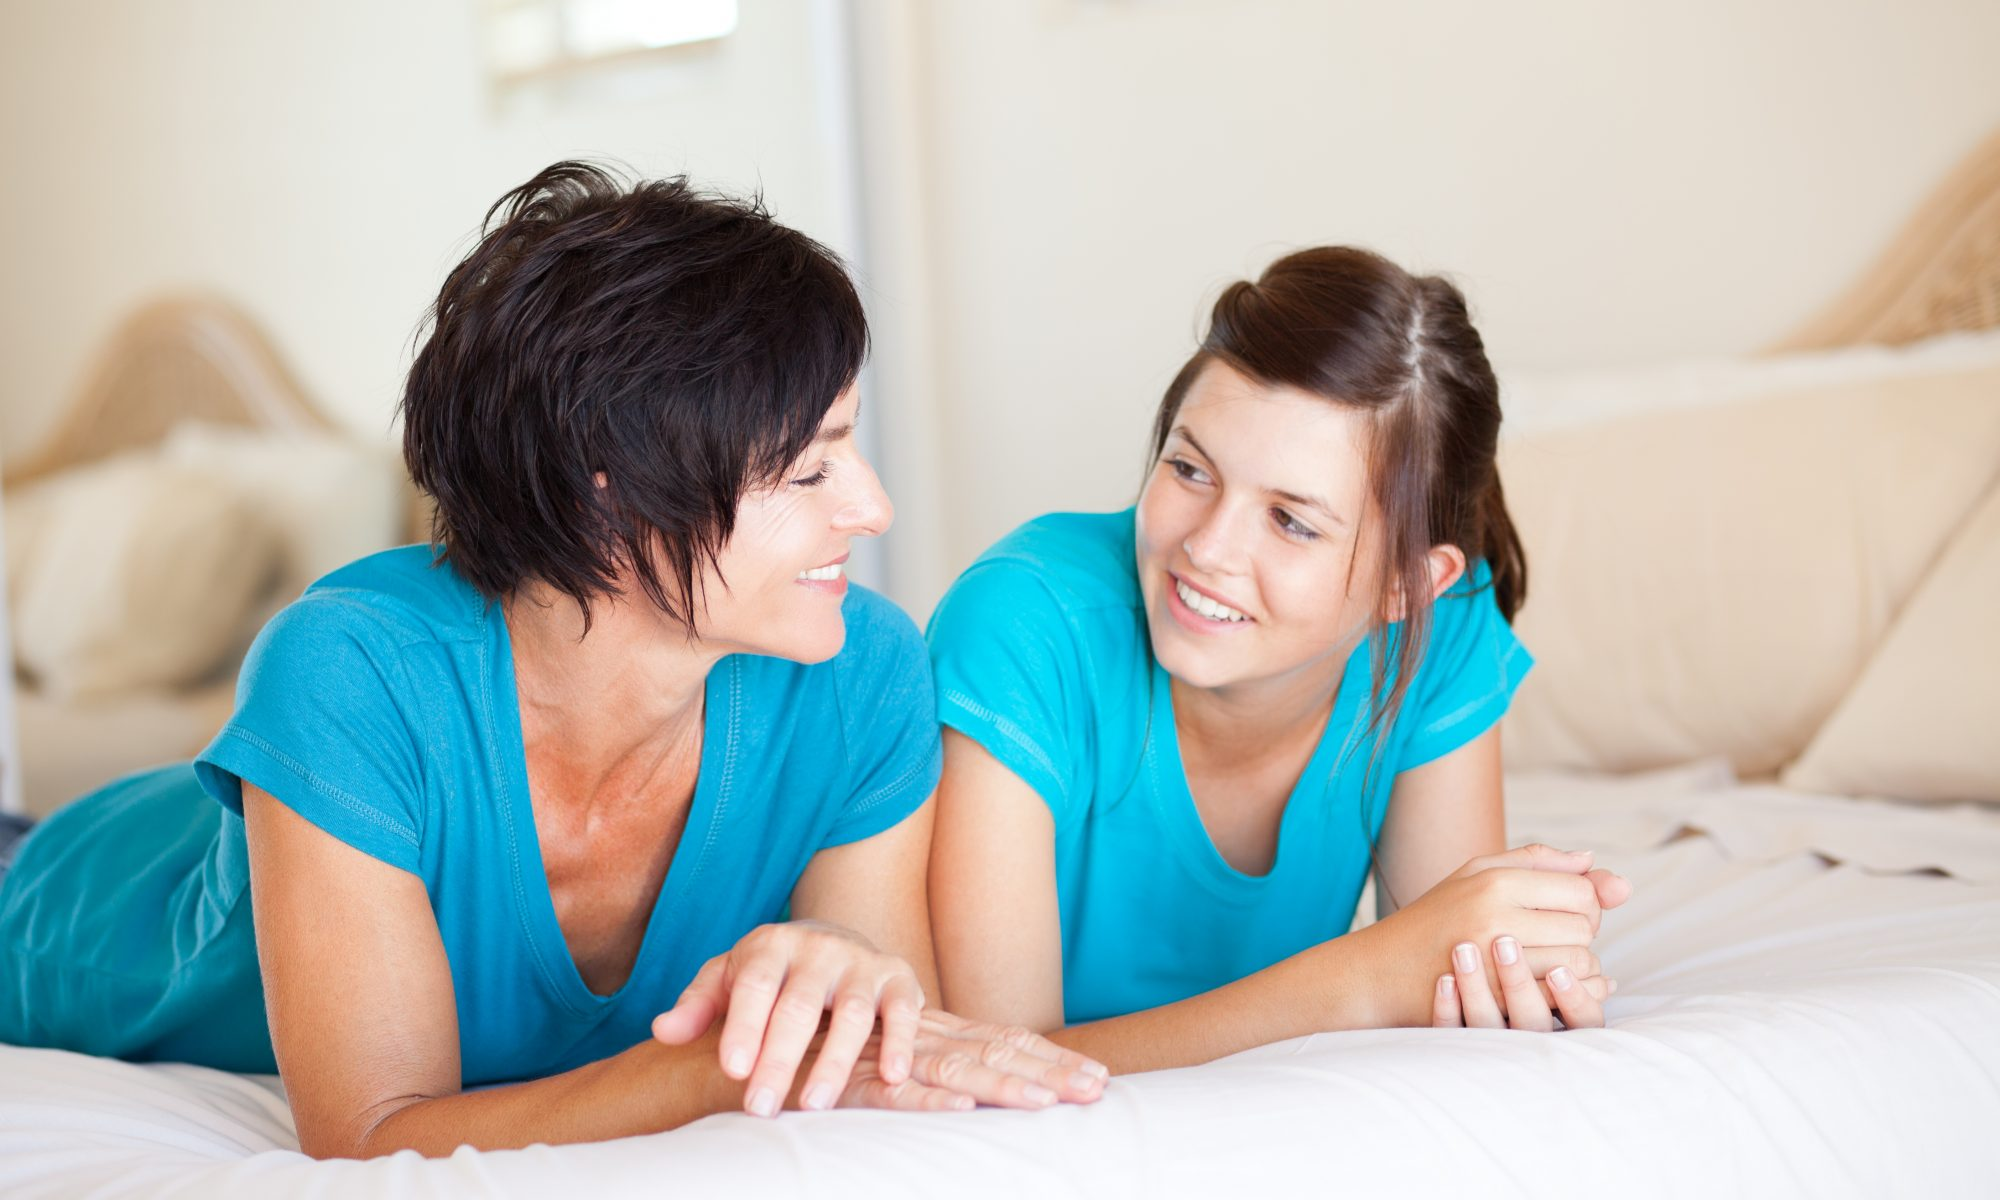 middle aged mother and teen daughter chatting on bed